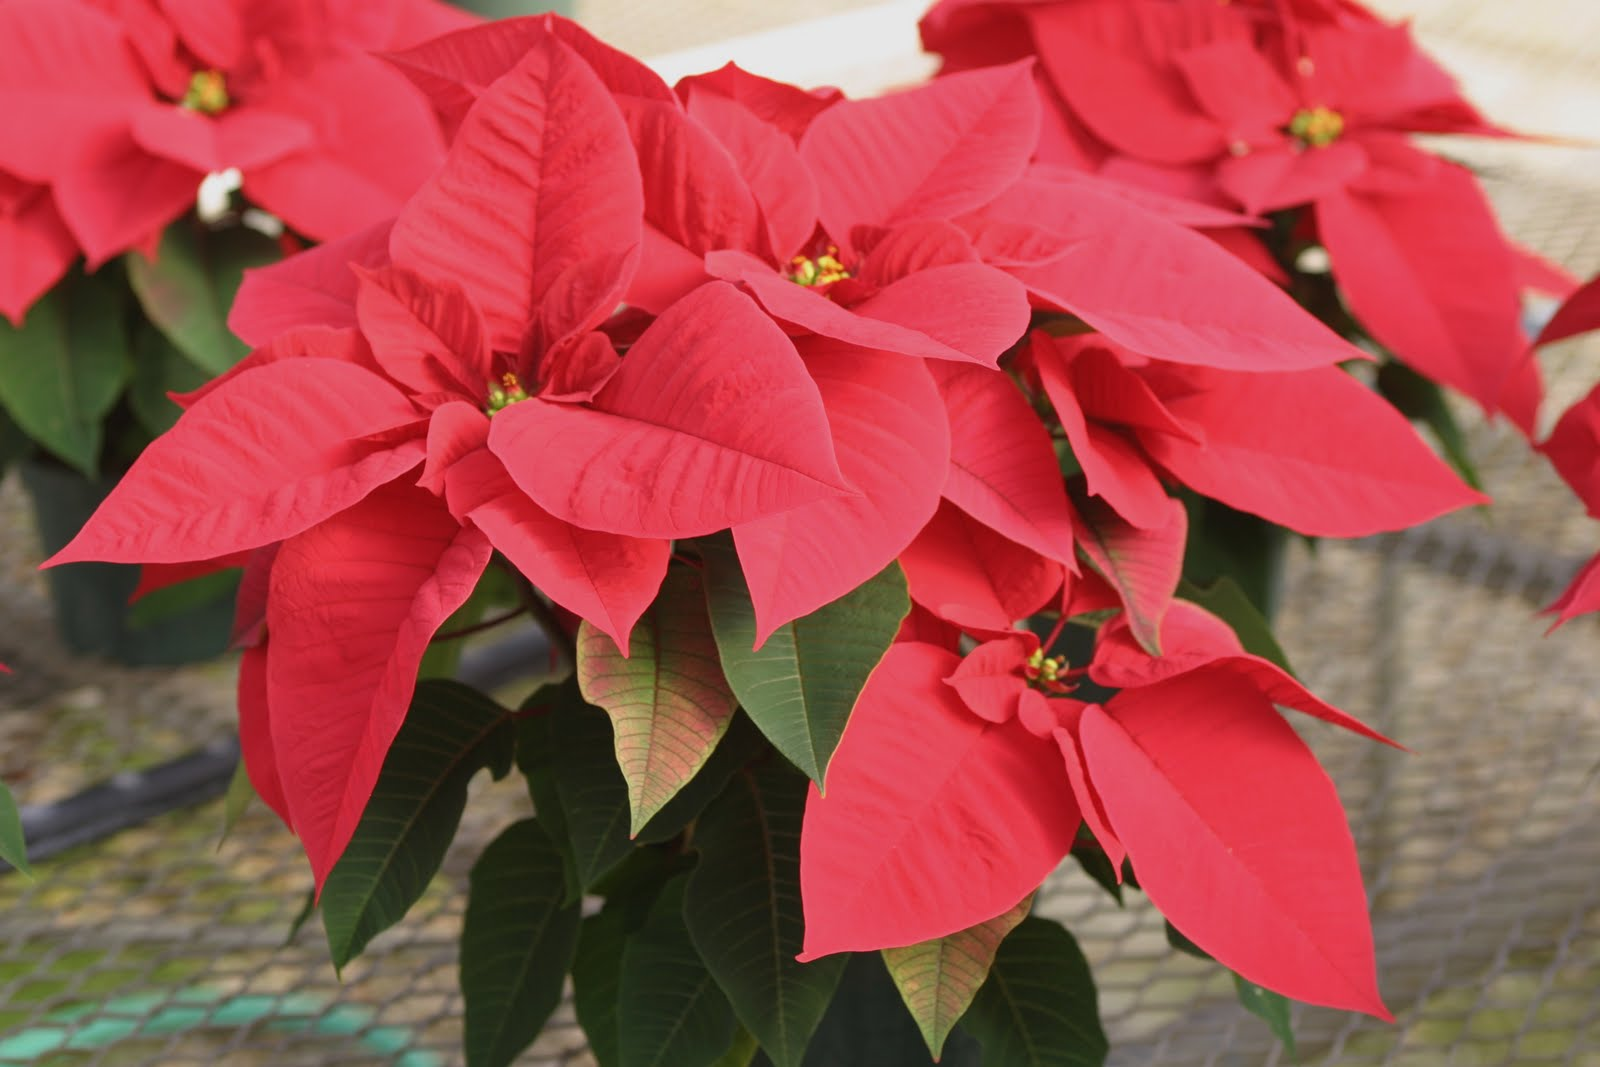 or red poinsettia - photo #19